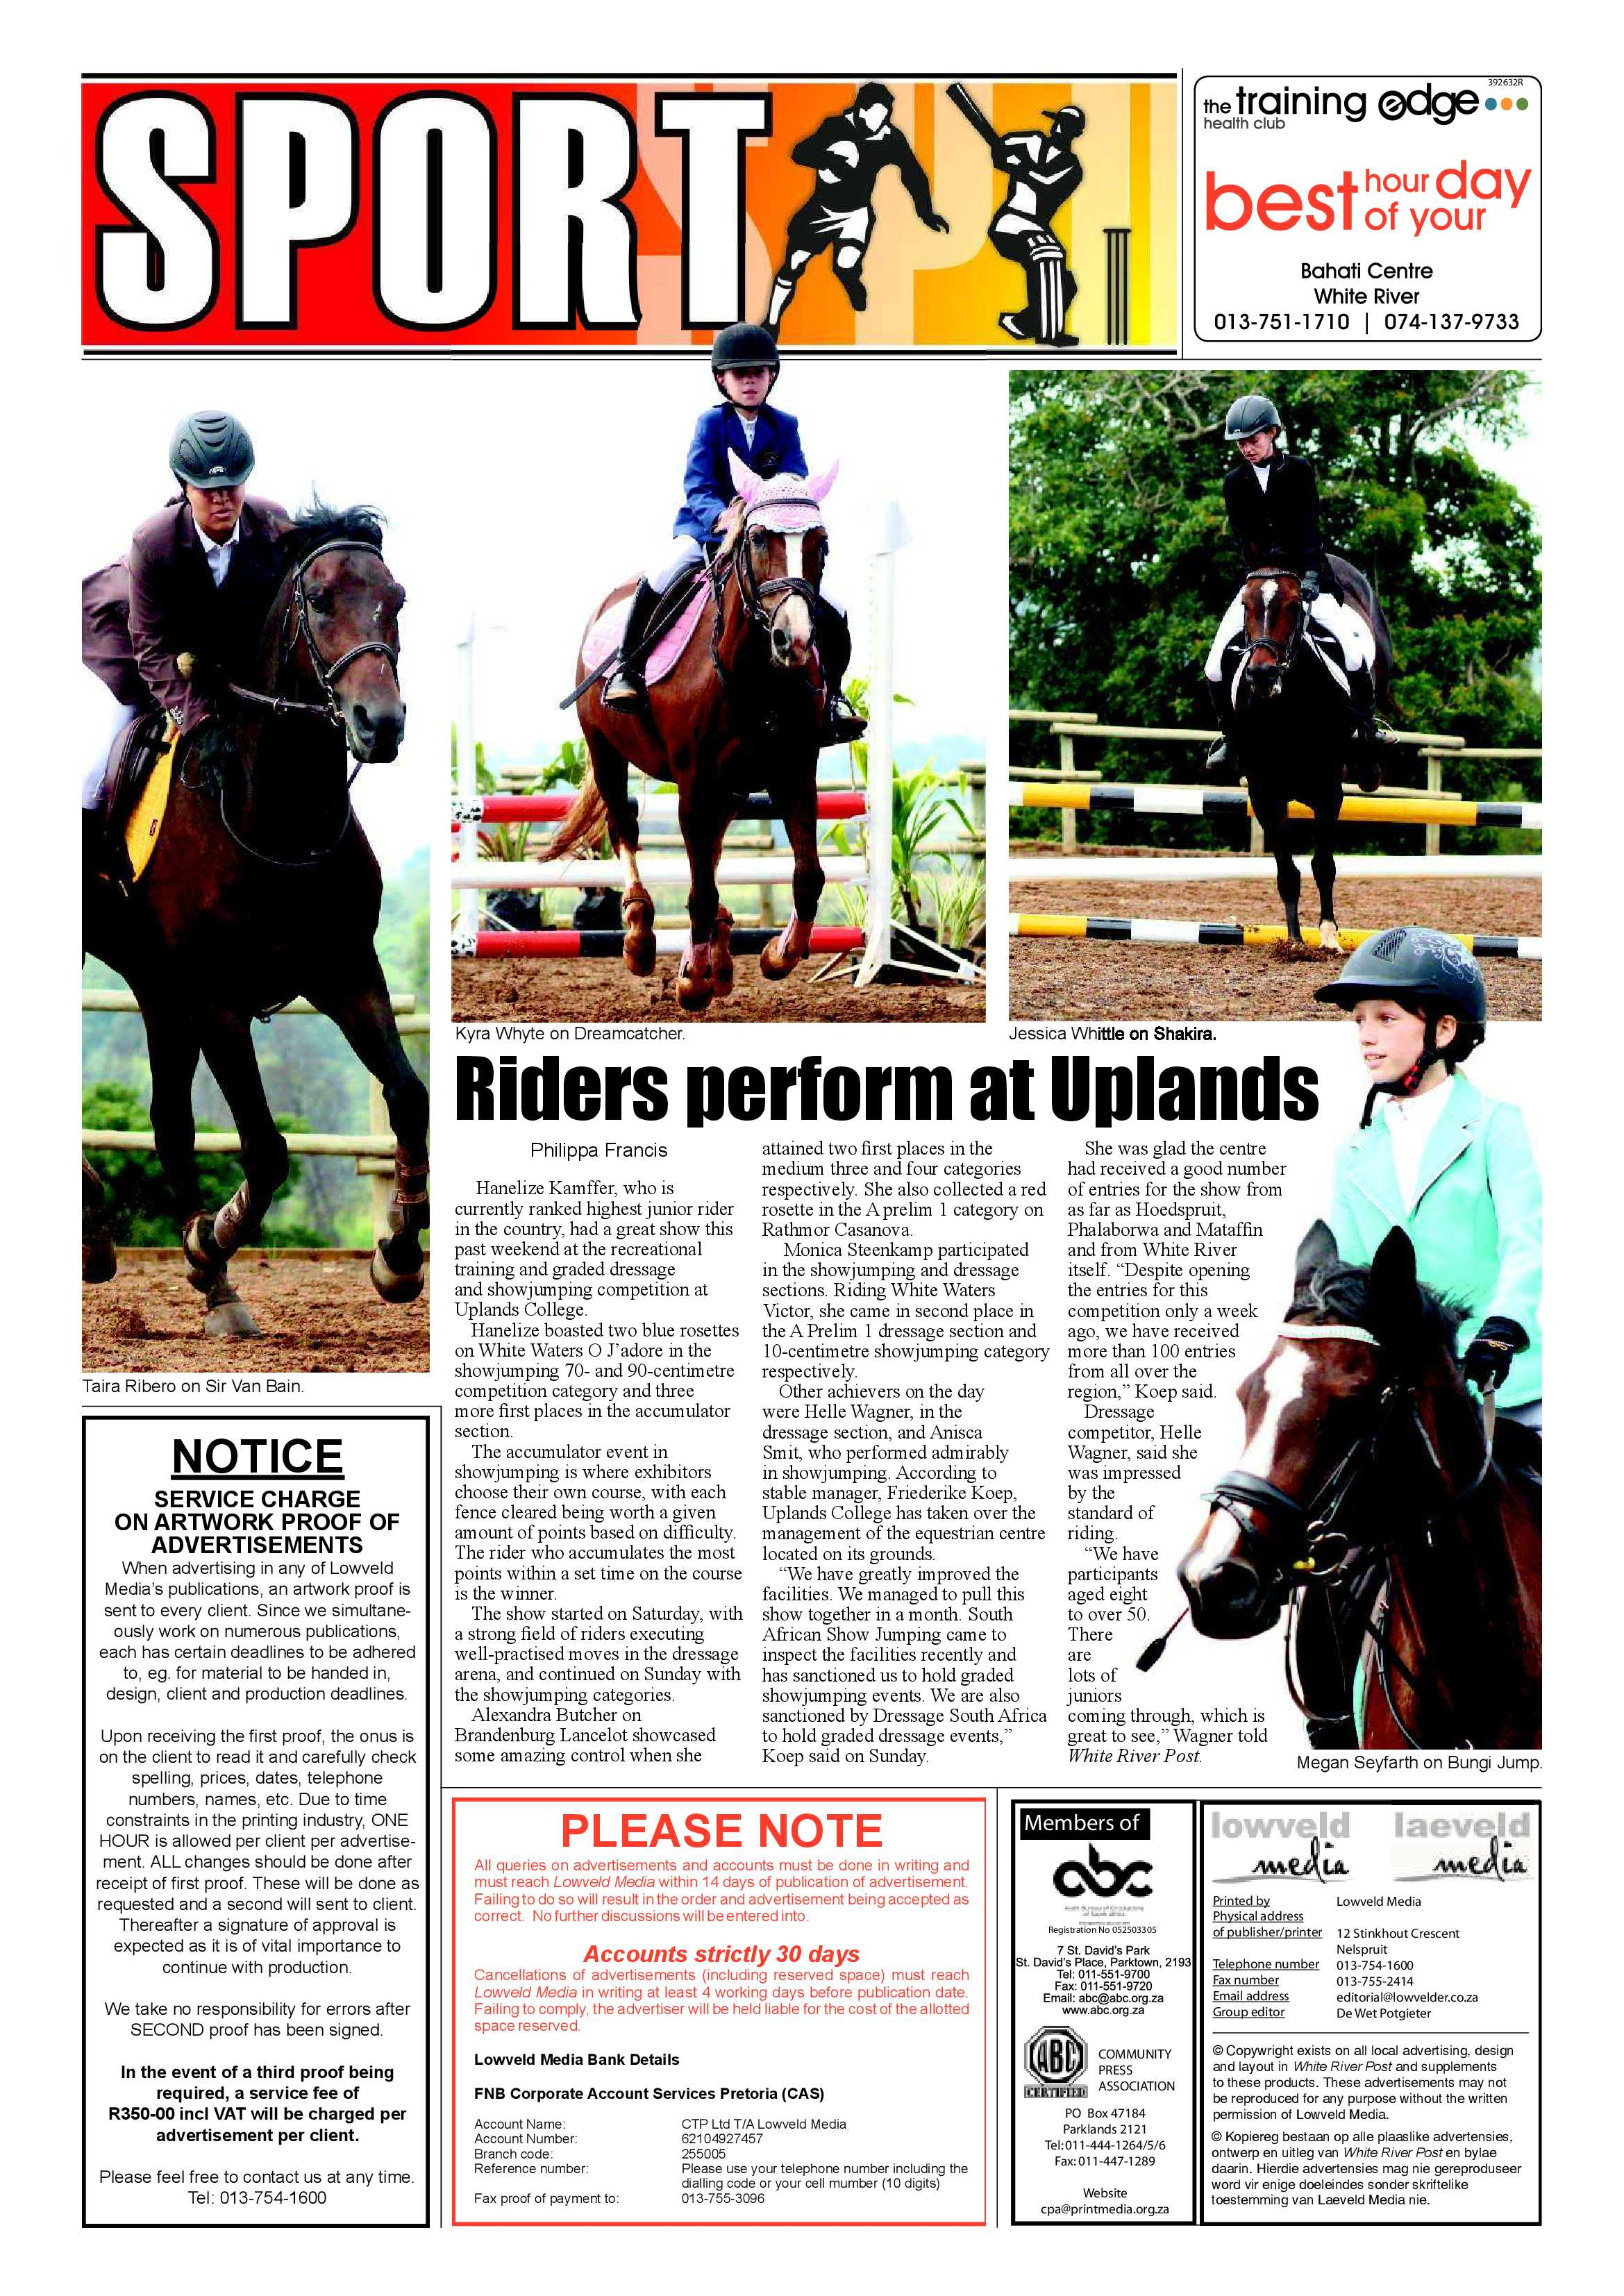 Posts for march page 7 - White River Post 9 March 2017 Epapers Page